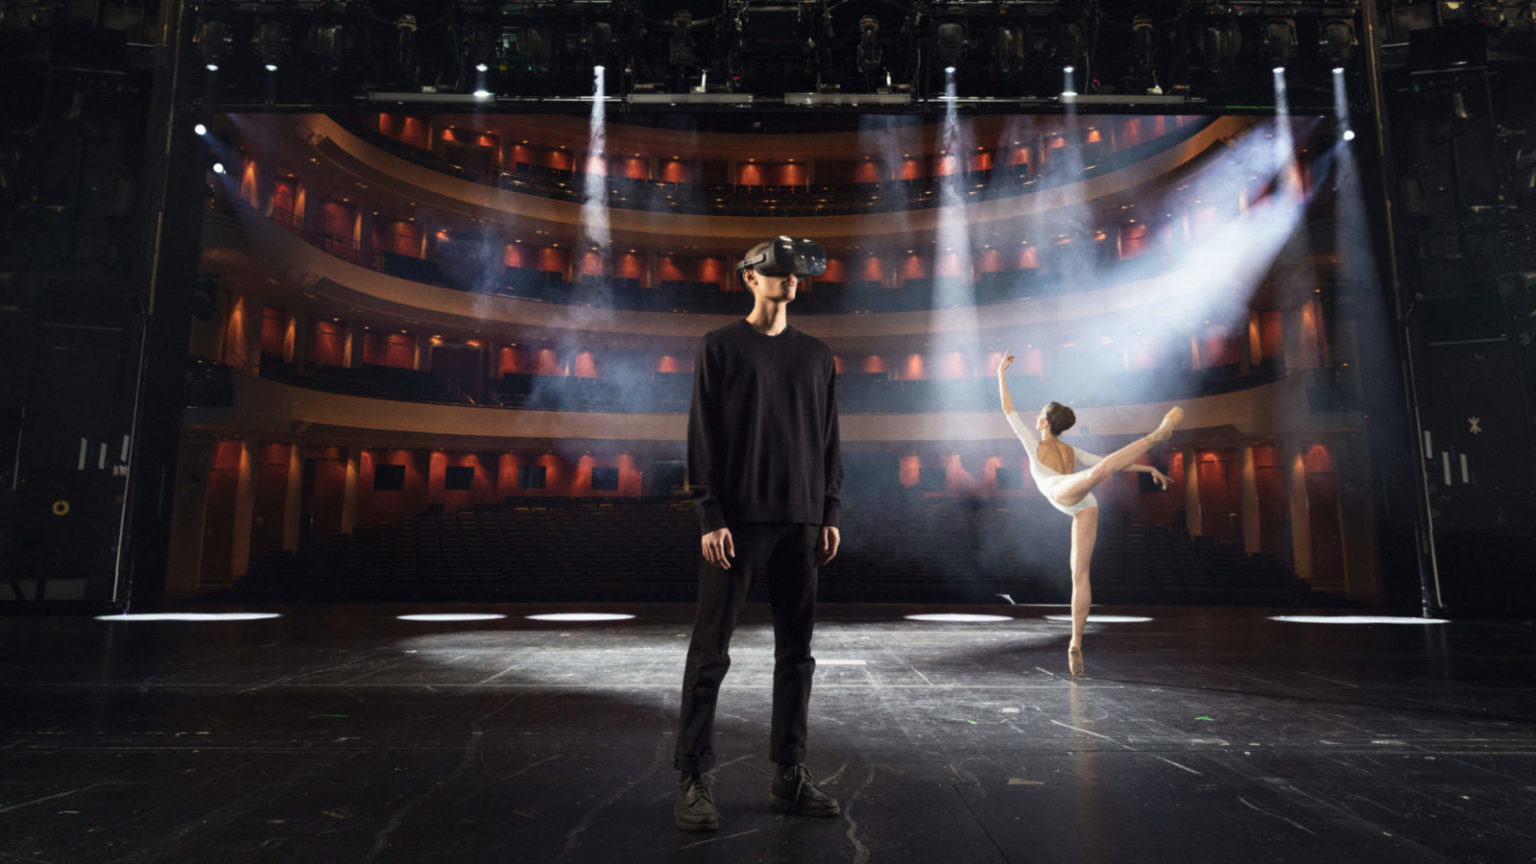 Man with VR goggles and a ballet dancer on the main stage of the Finnish National Opera and Ballet